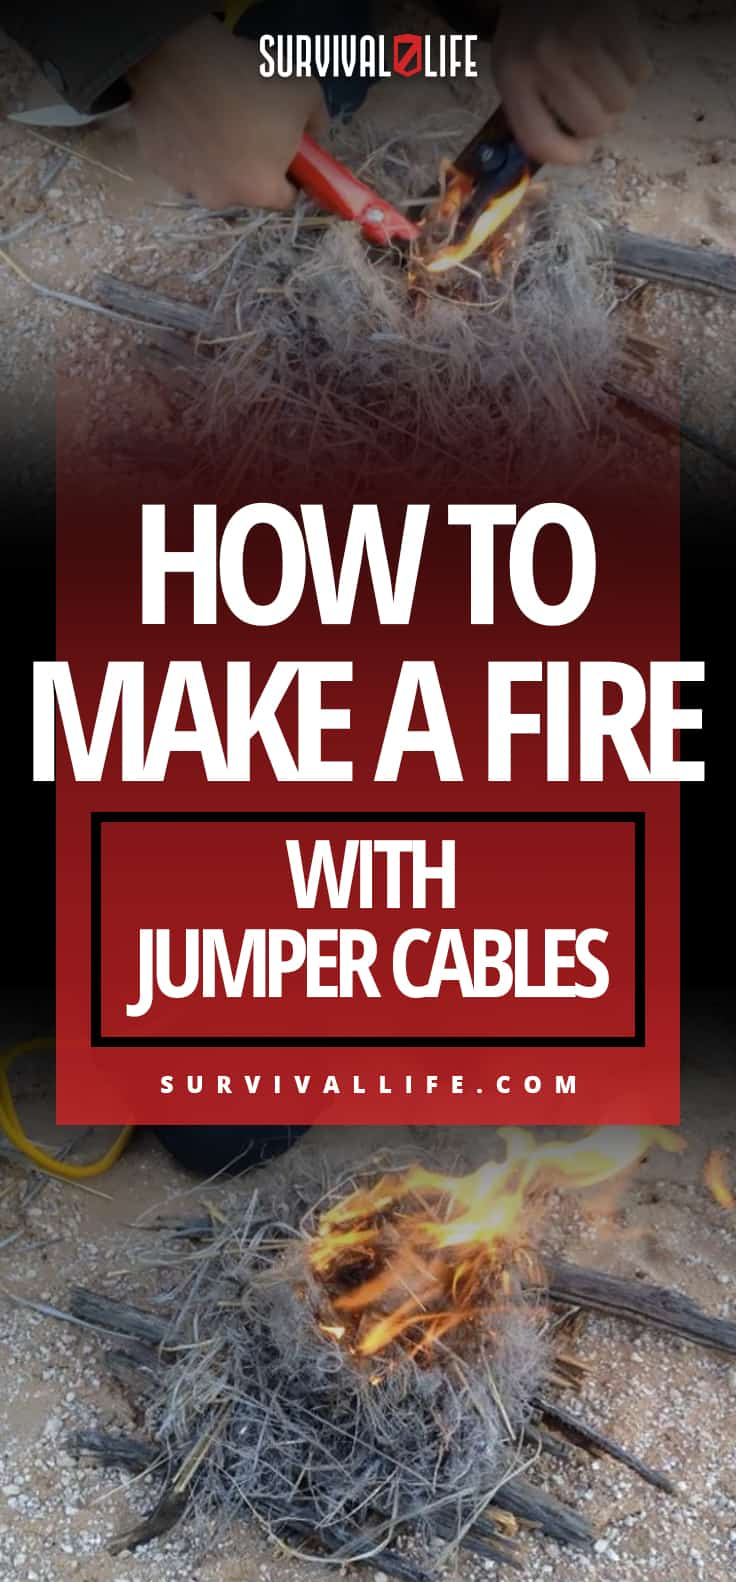 How To Make A Fire With Jumper Cables